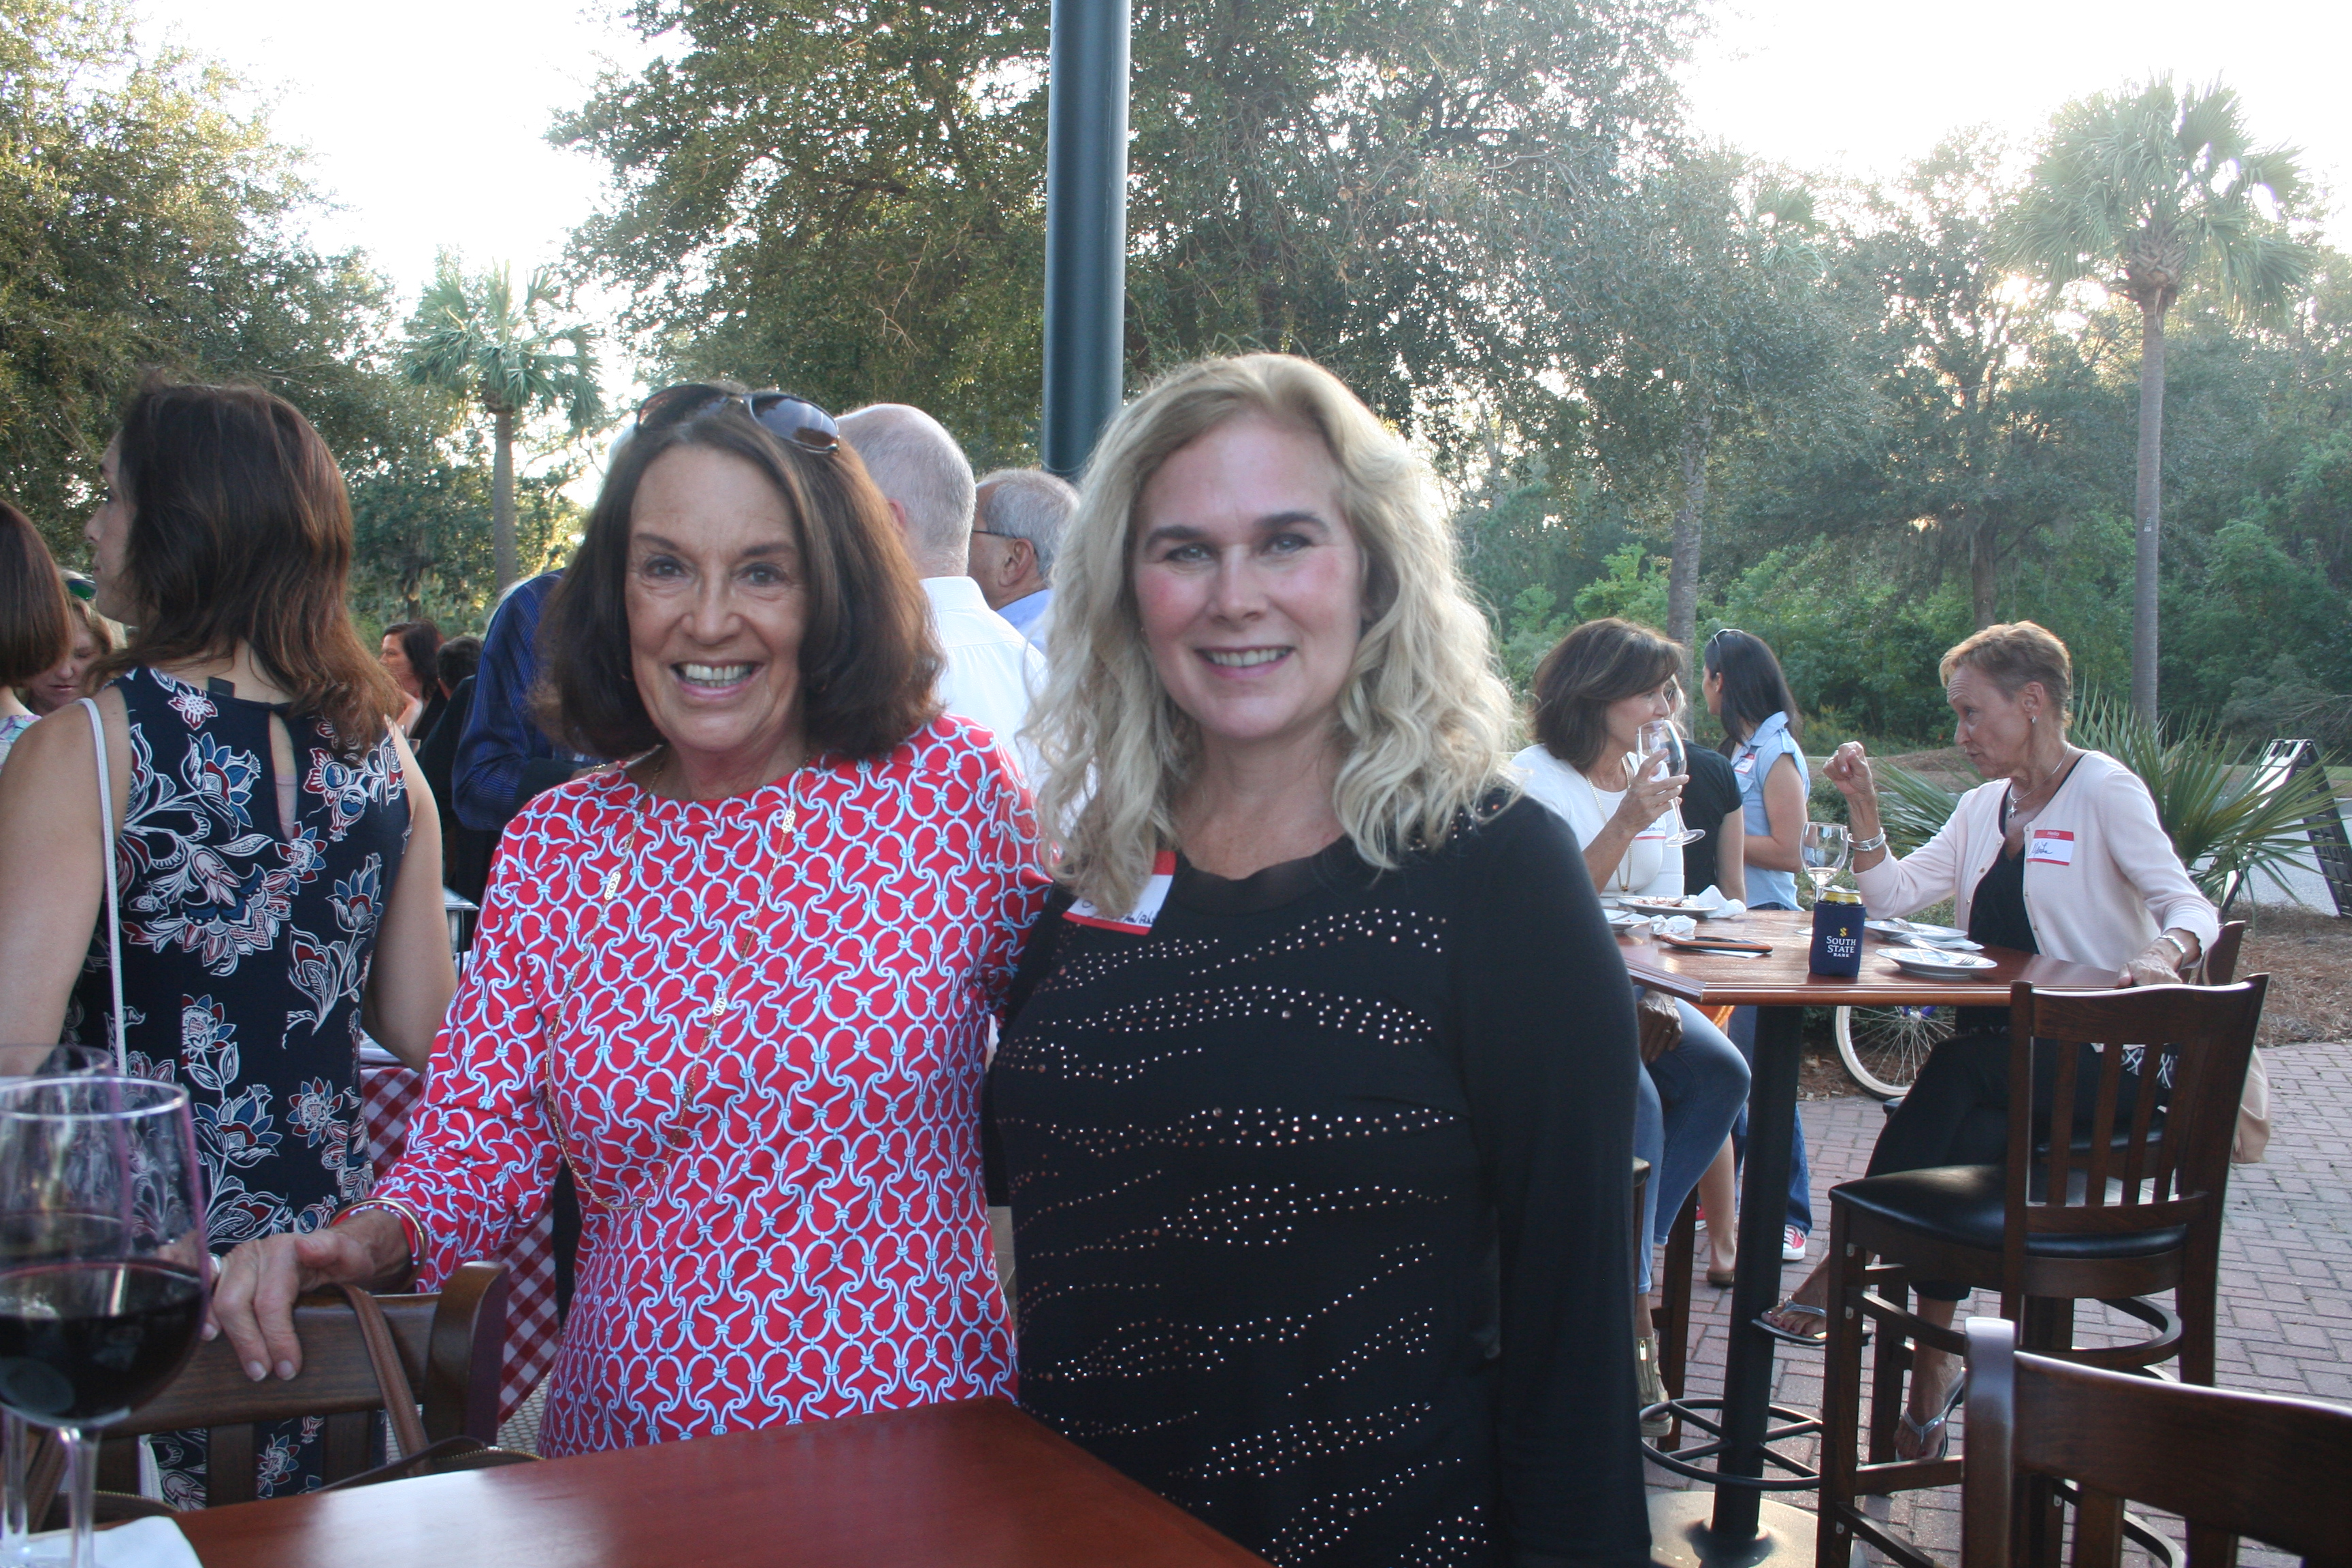 Nadine Hershey of Business Accounting Solutions and Sherri Seymour of CCGB Real Estate Group mingle with friends during the DIBA happy hour outside LIDI on a beautiful fall evening.